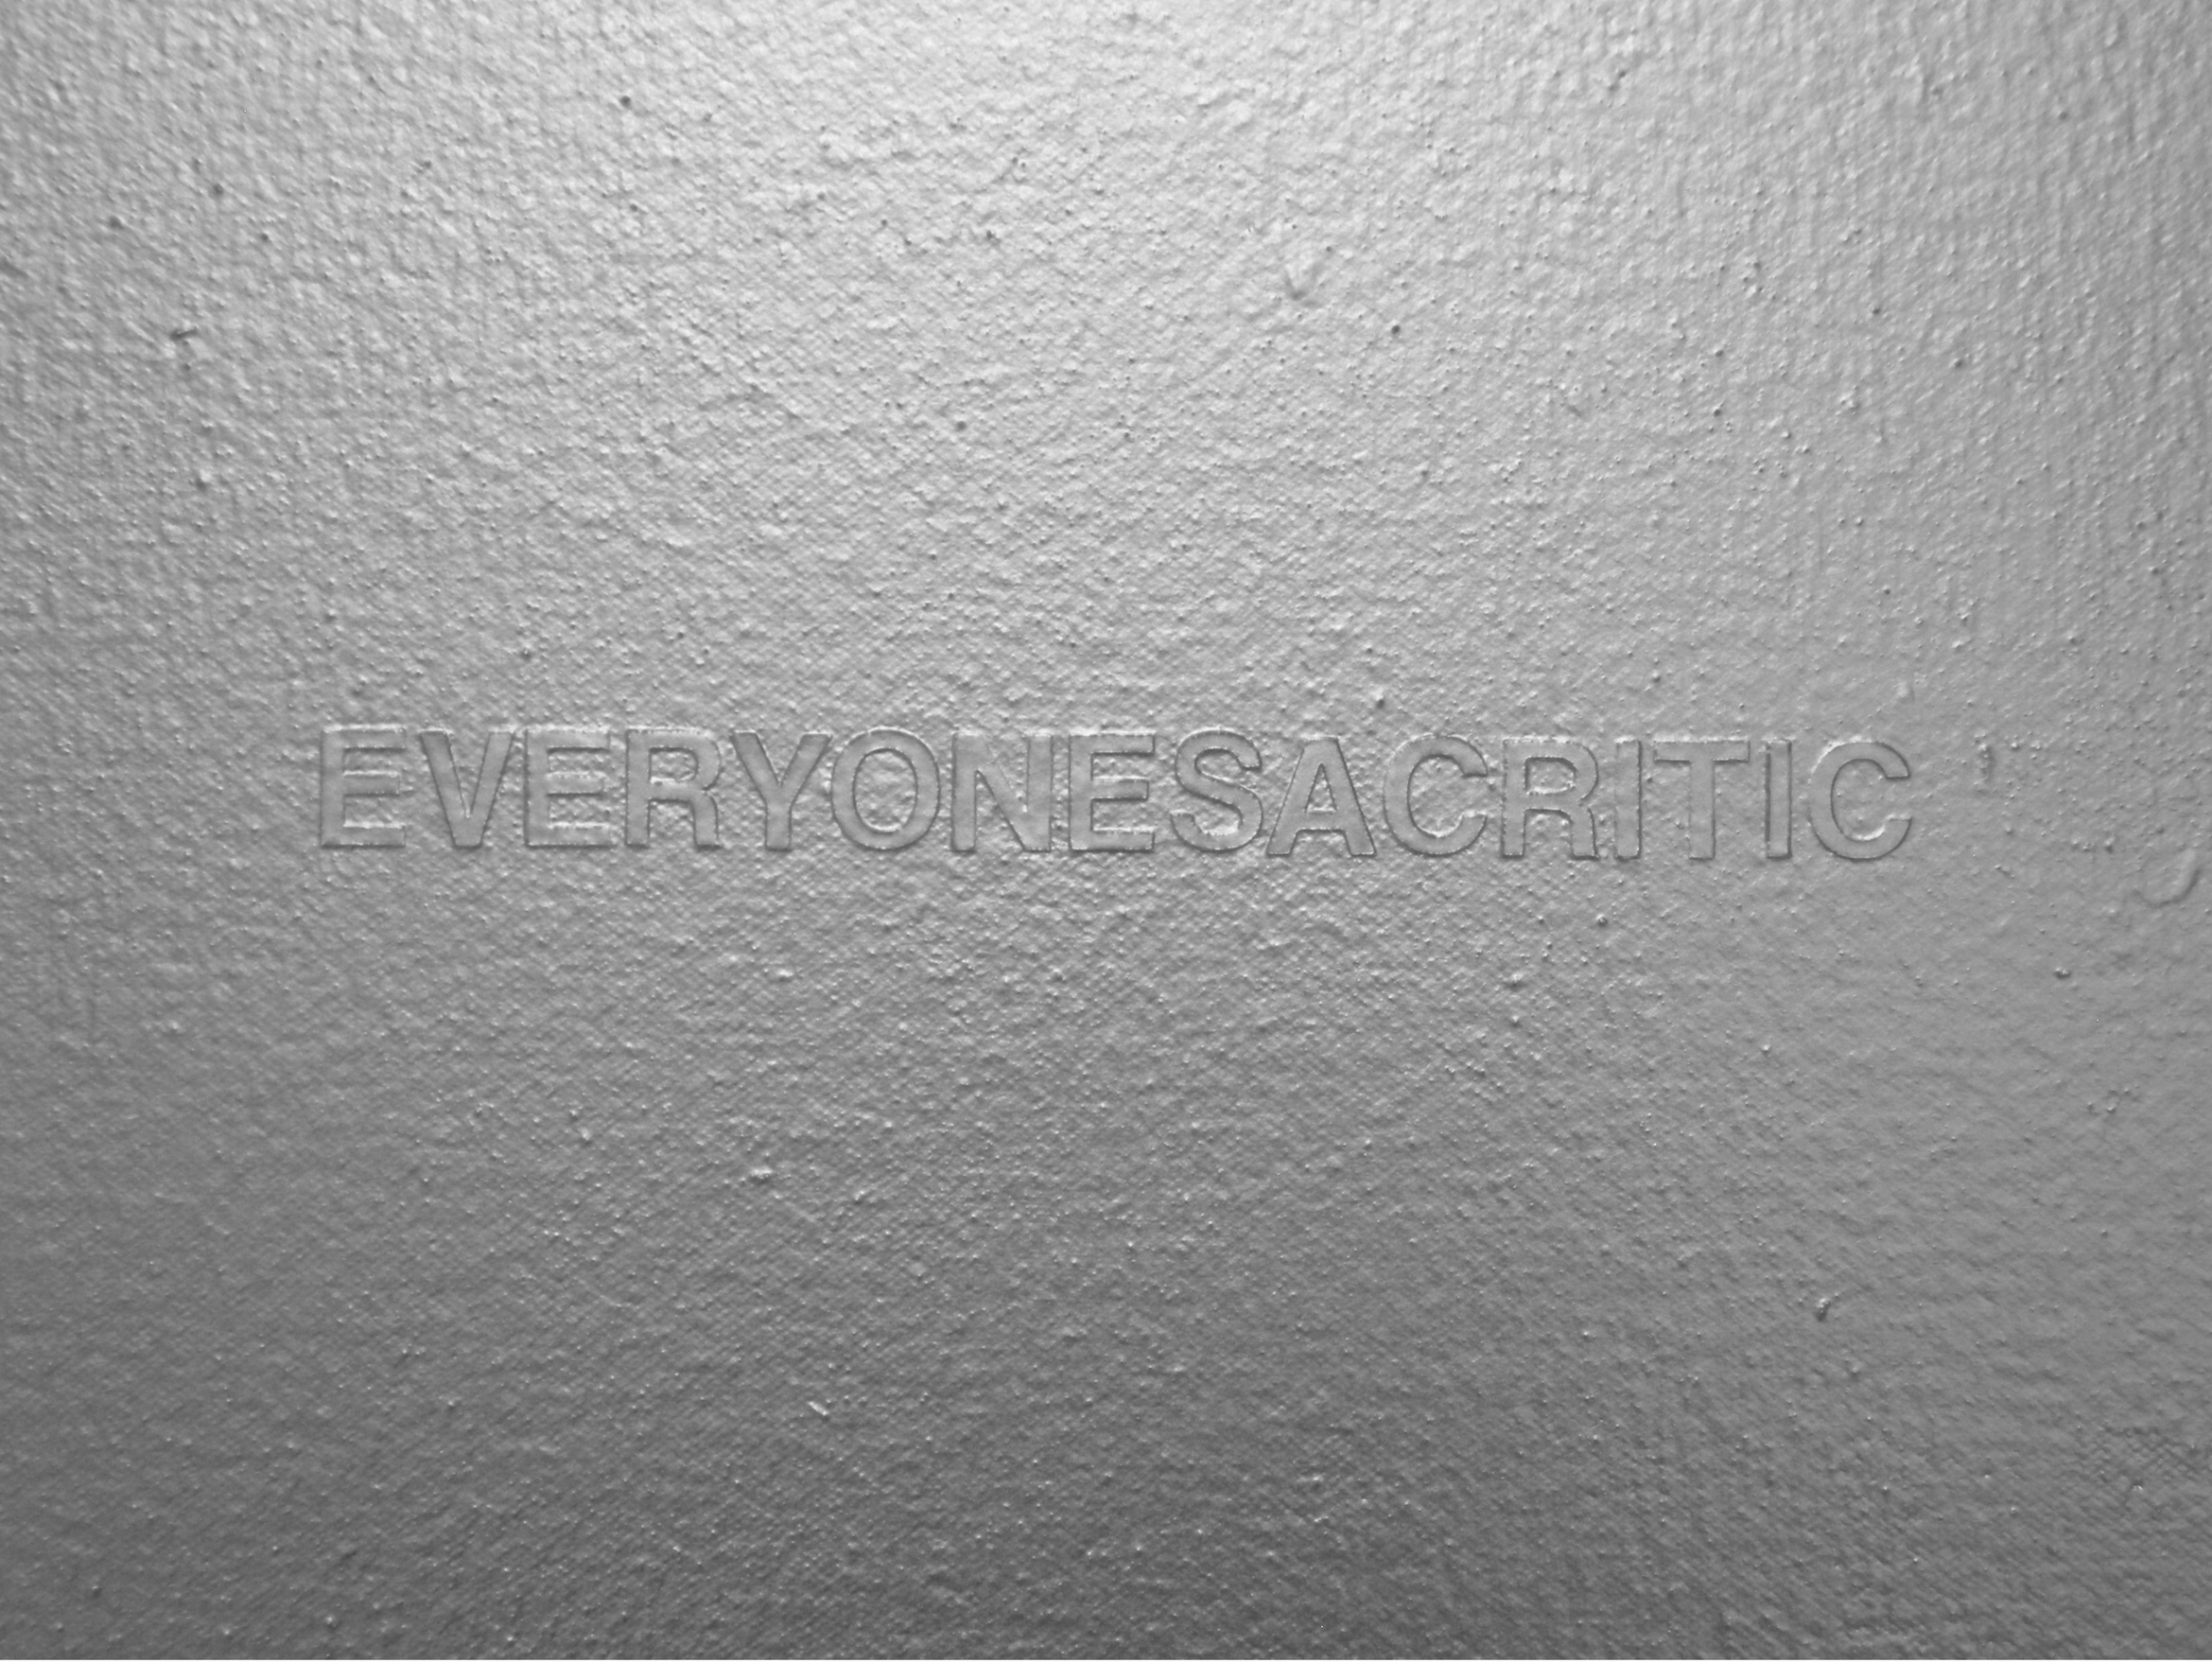 Everyone's a Critic  Industrial Paint on Canvas - 20 x 24in - 2011